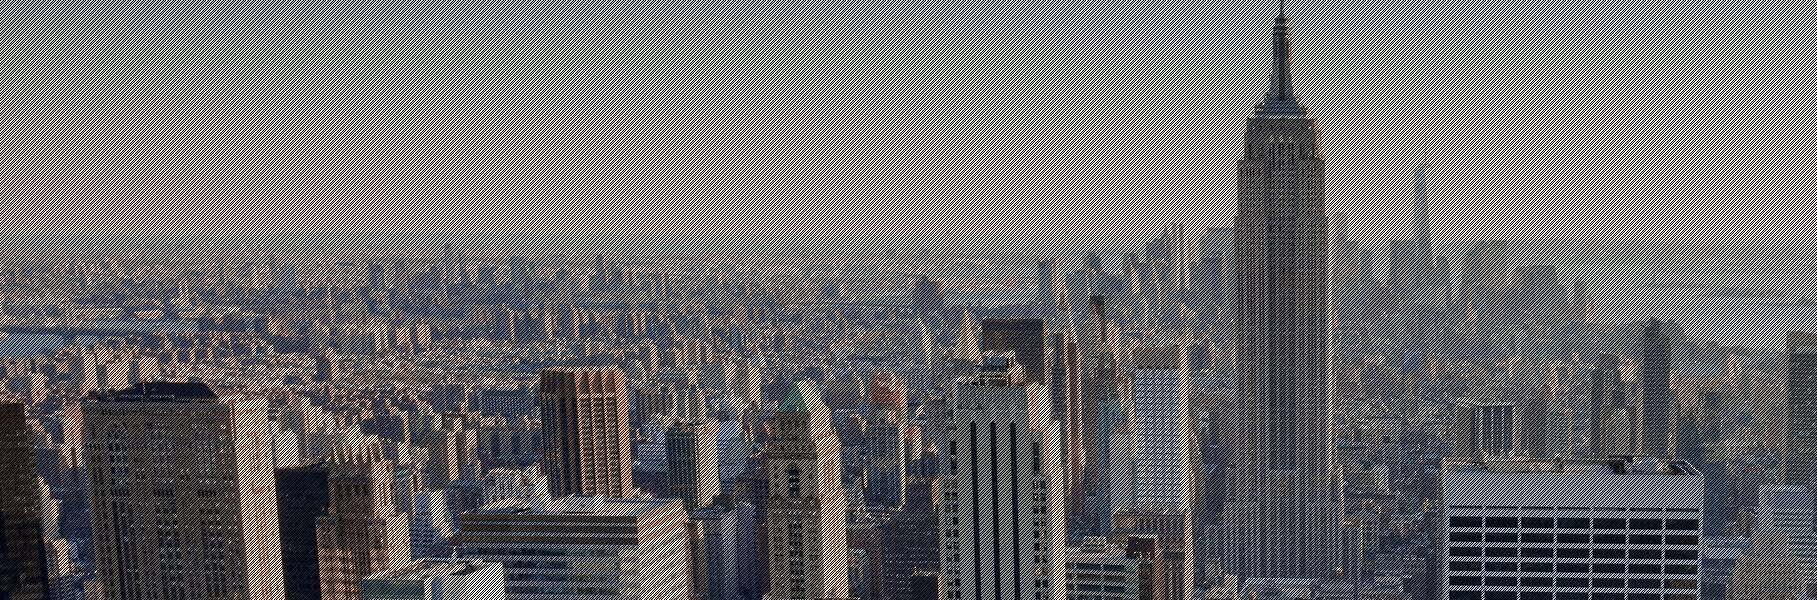 Main banner slider 5 - New York City Skyline